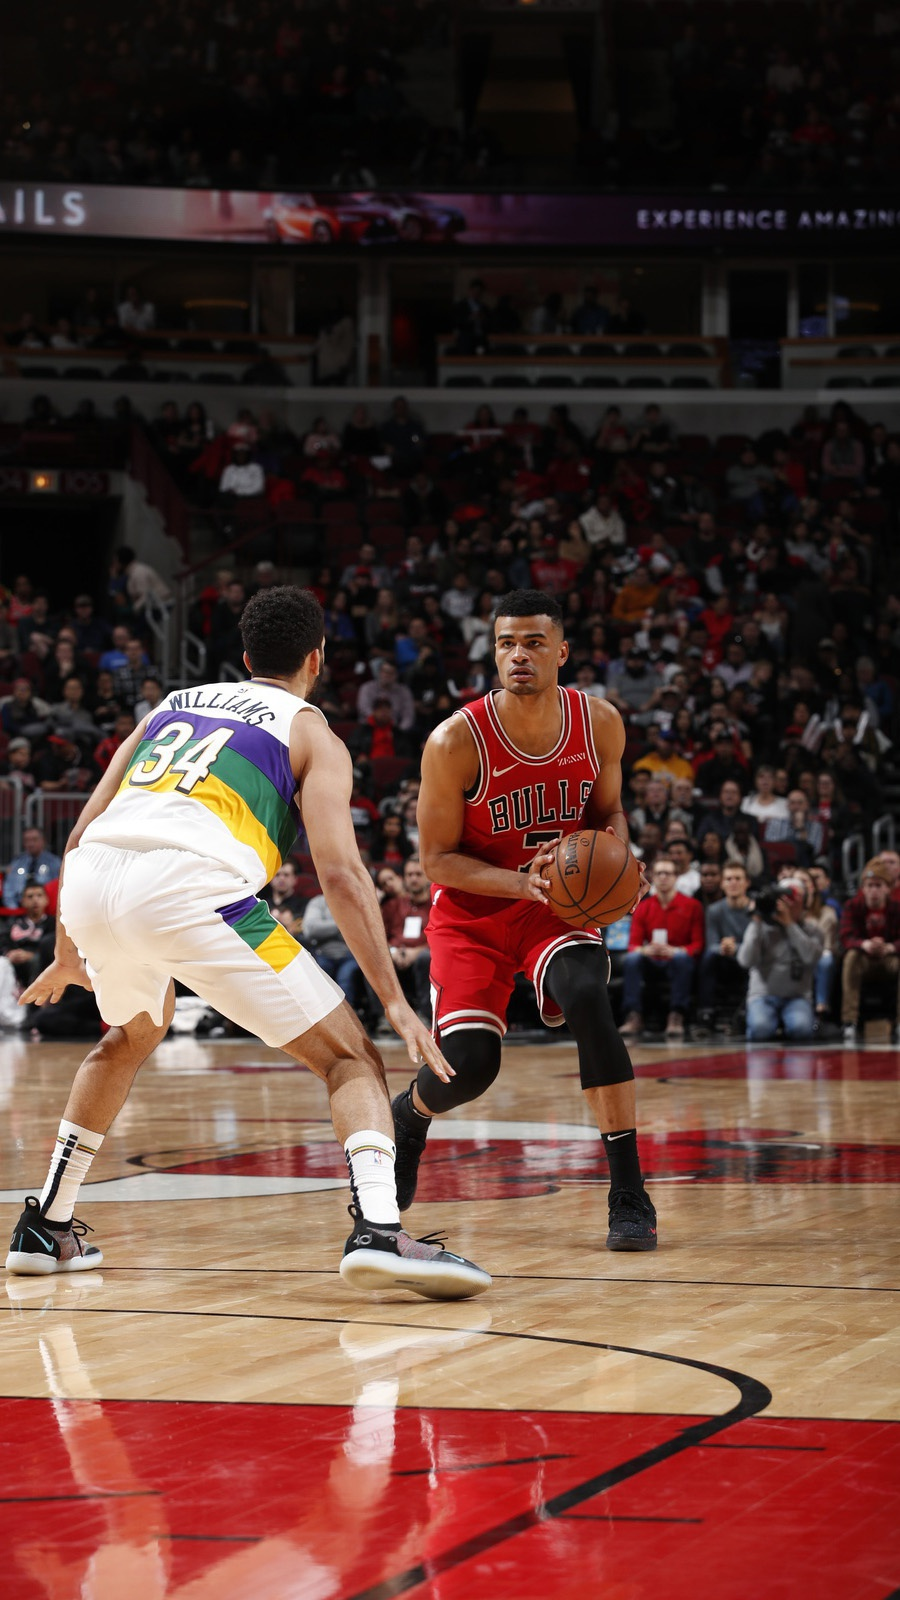 Timothe Luwawu-Cabarrot dribbles the ball against the New Orleans Pelicans on February 6, 2019 at United Center in Chicago, Illinois.